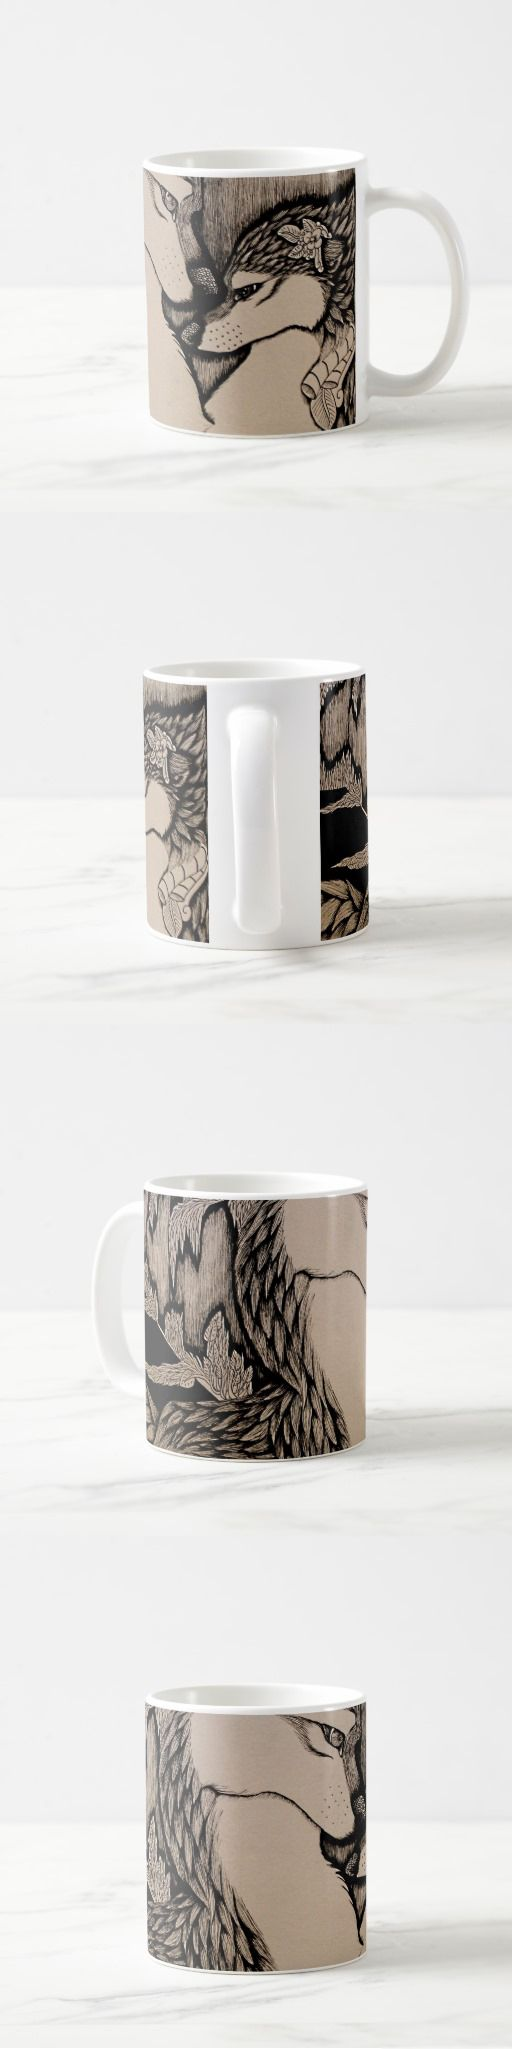 """An afternoon walk"" Coffee Mug  #wolf #wolves #cute #couple #pair #art #illustration #sepia #blackandwhite #products #items #stuff #pendrawing #abstract #detailed #canine #animal #decor"